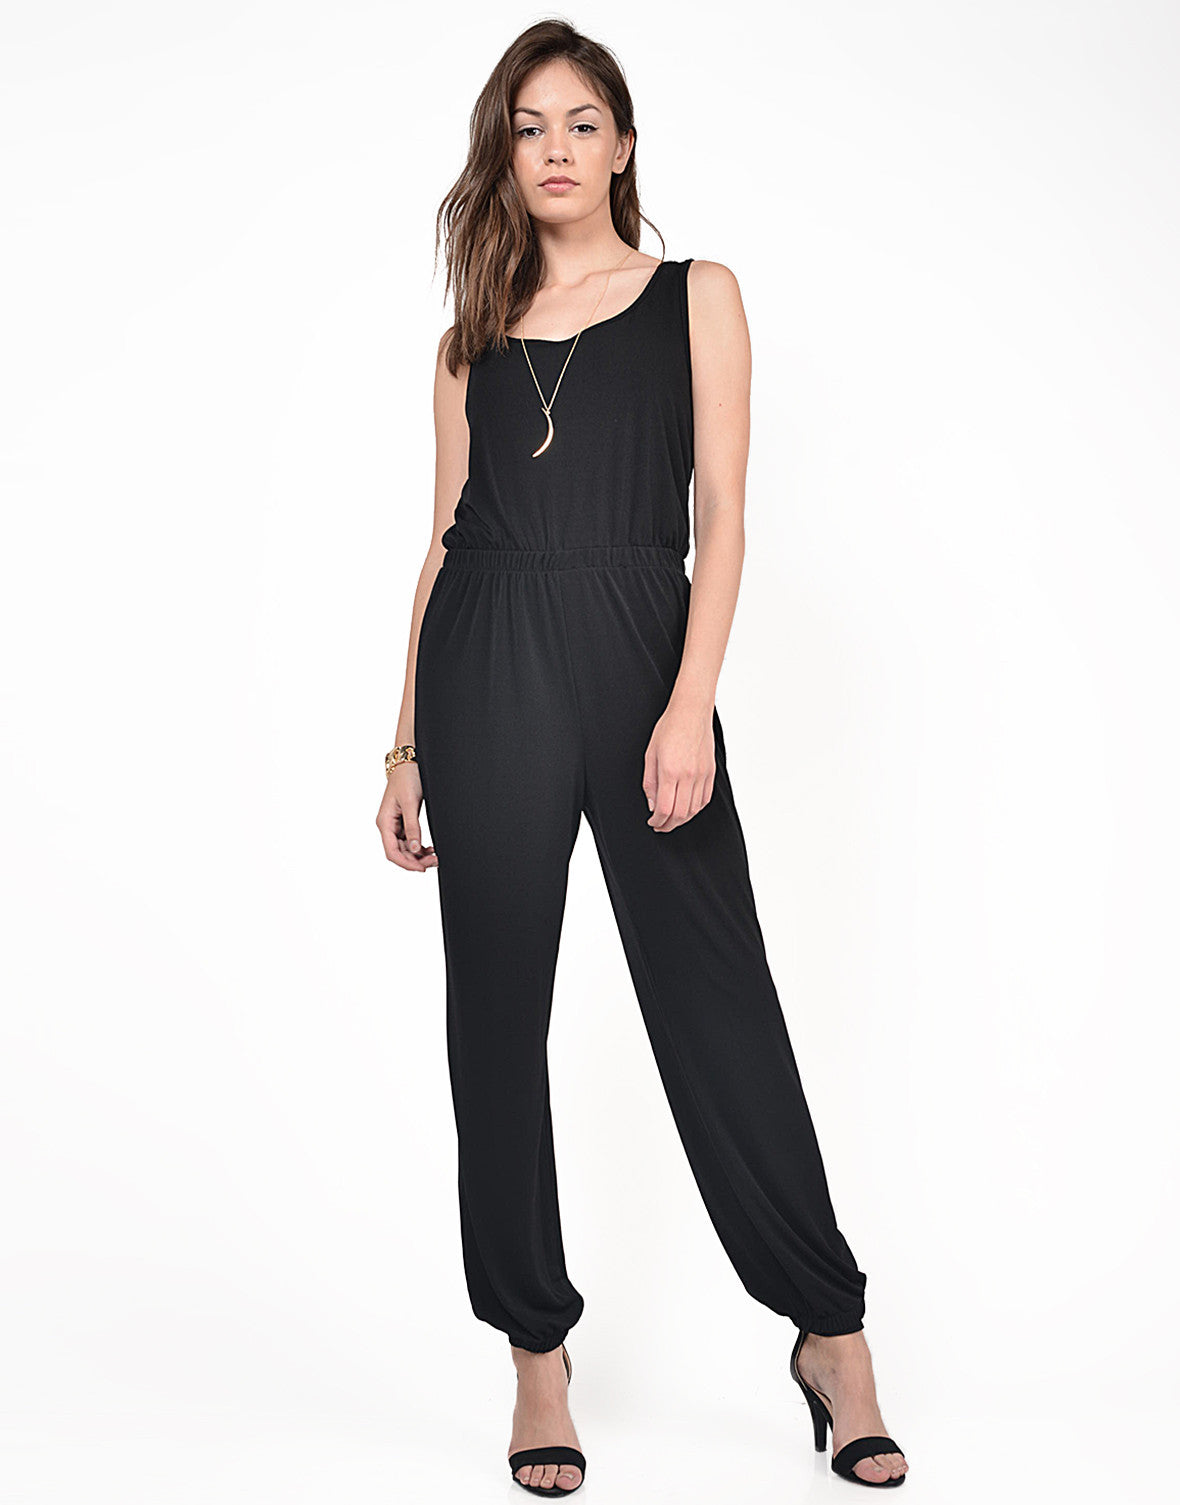 Front View of Classic Black Jumpsuit